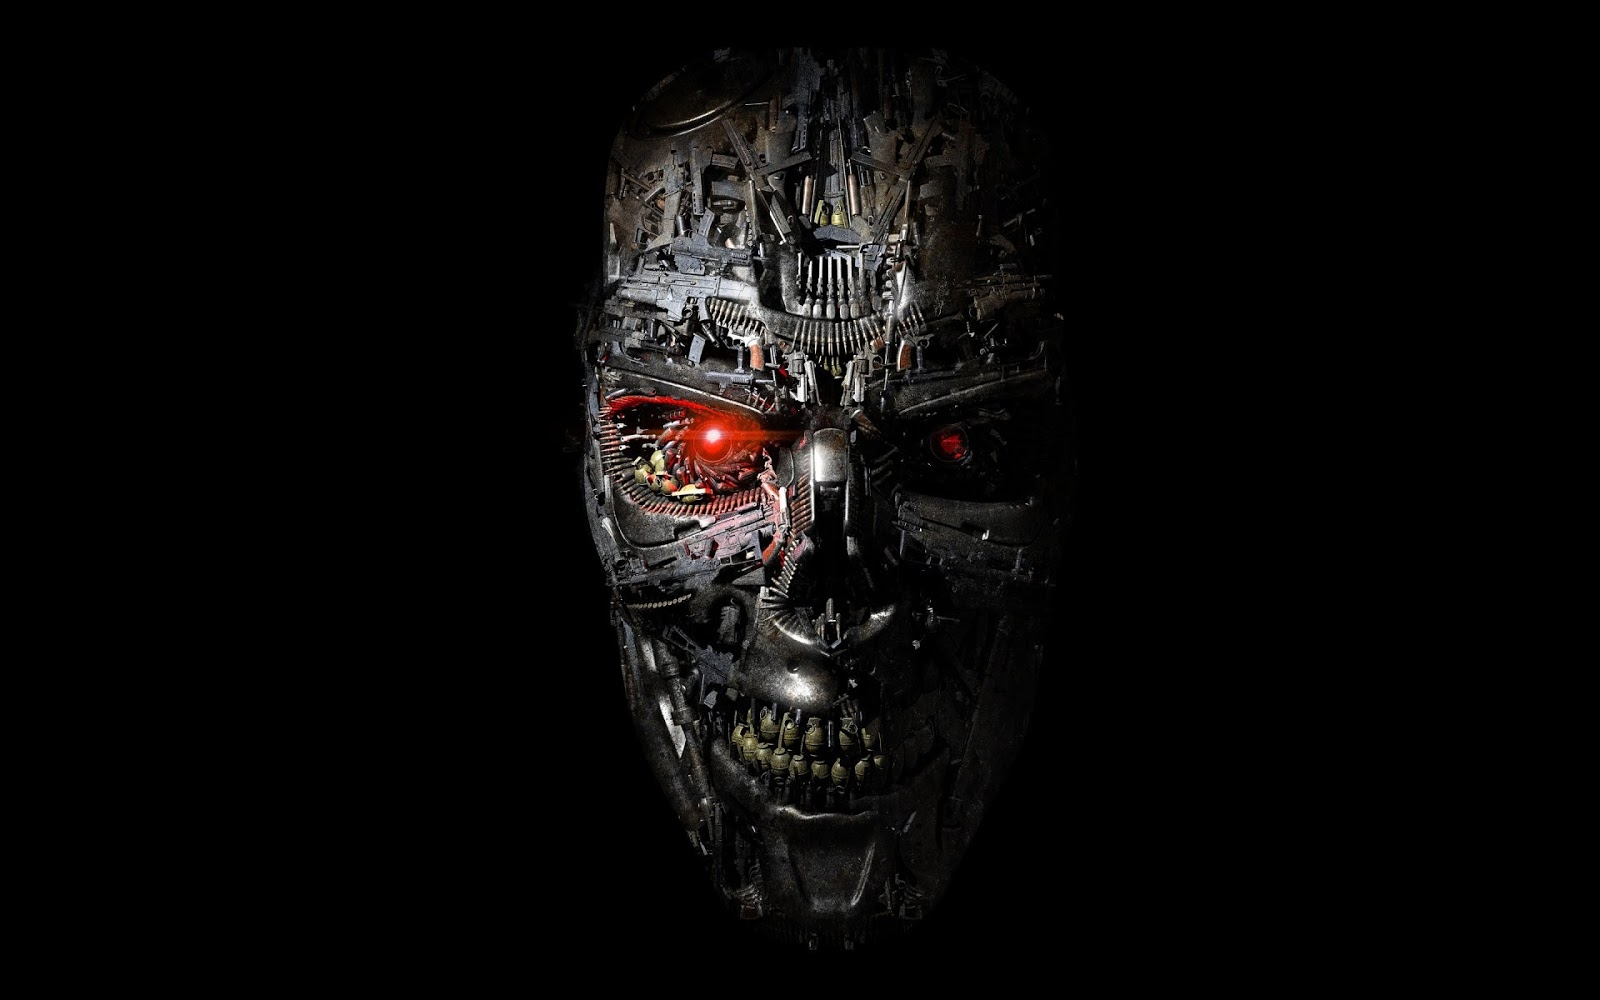 terminator : genesis, terminator: genisys, fiction, terminator, skull, creative, weapon, machines, guns, grenade, cartridges, black background